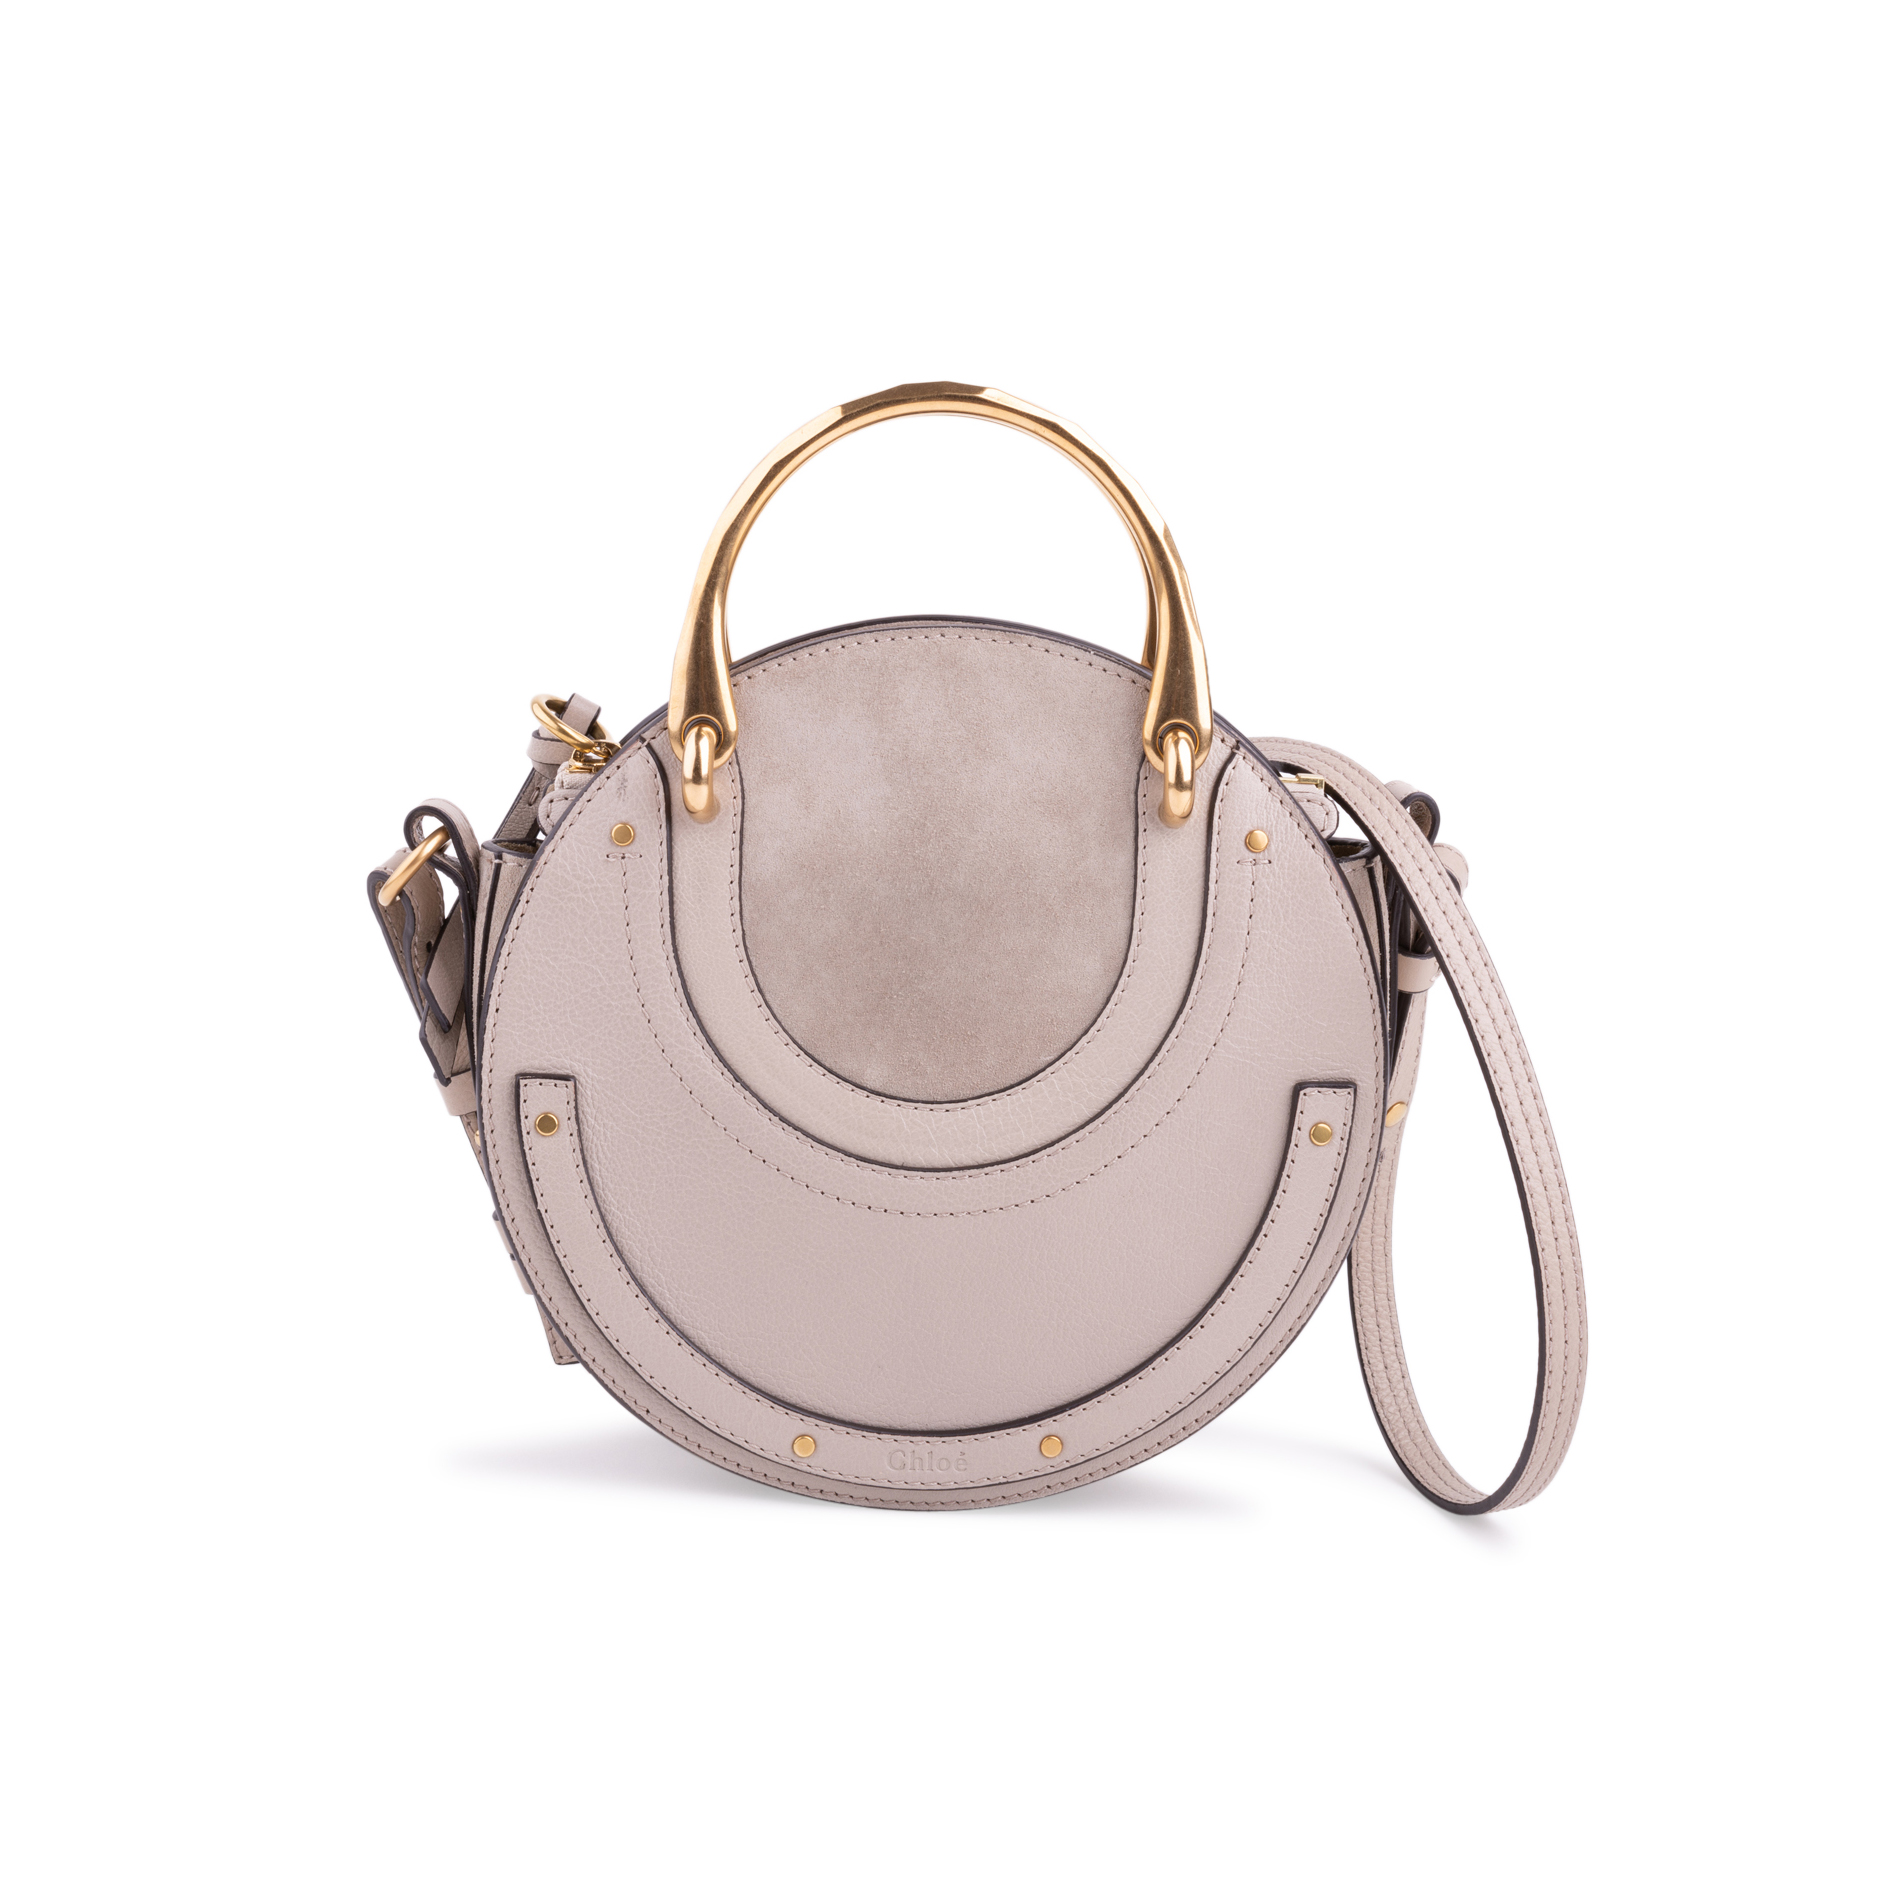 54b6e0900e3eb Authentic Second Hand Chloé Pixie Bag (PSS-424-00139) - THE FIFTH COLLECTION